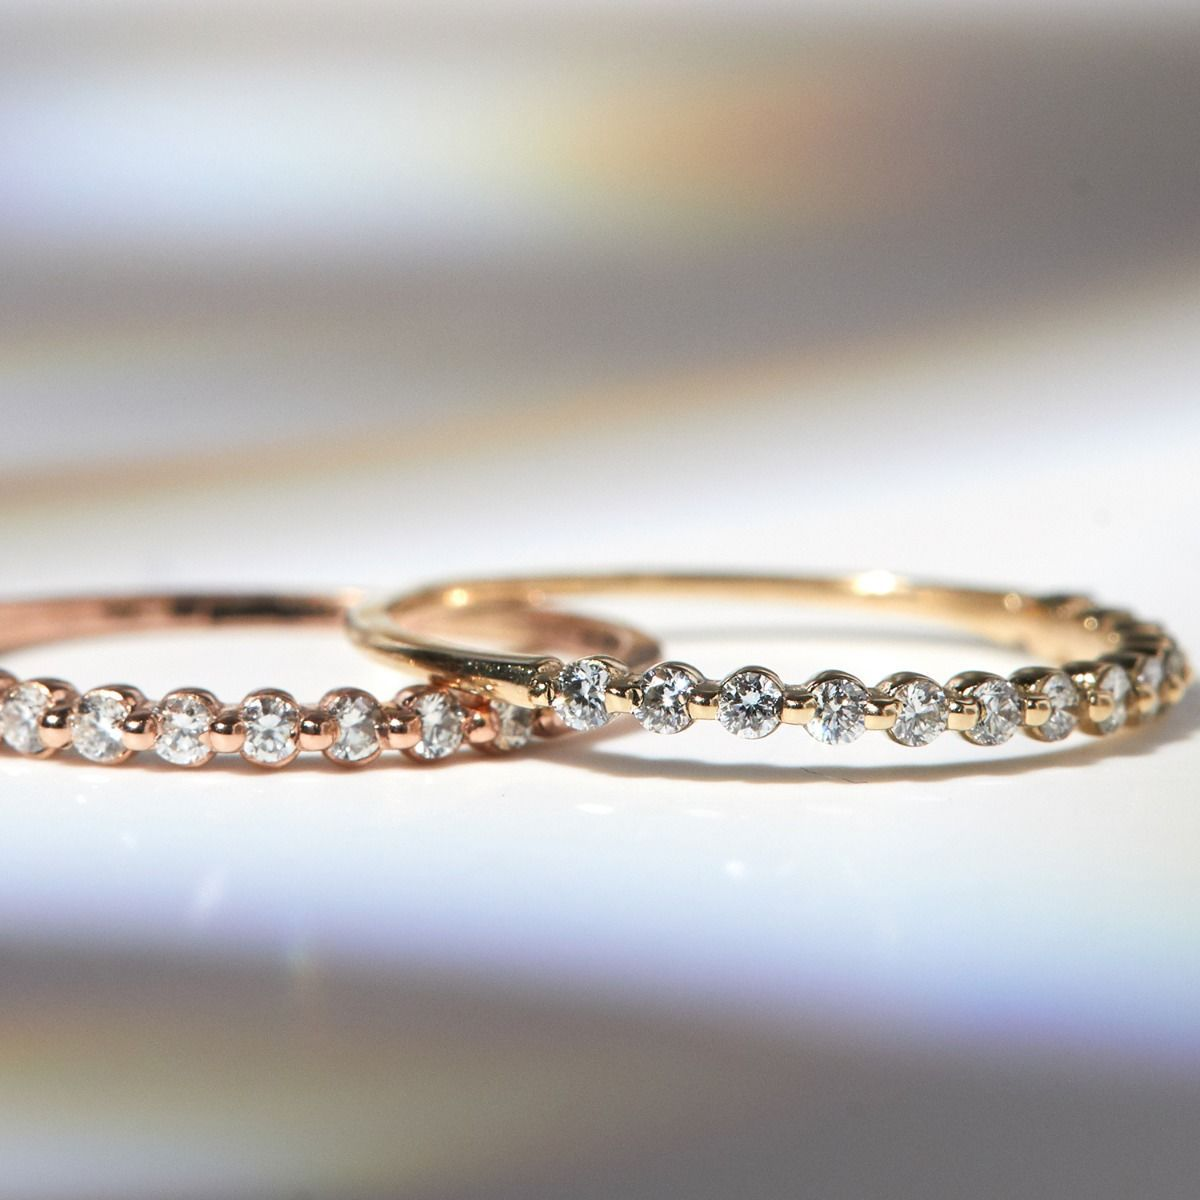 This is an image of The 49 Best Places to Buy Wedding Bands Online of 49